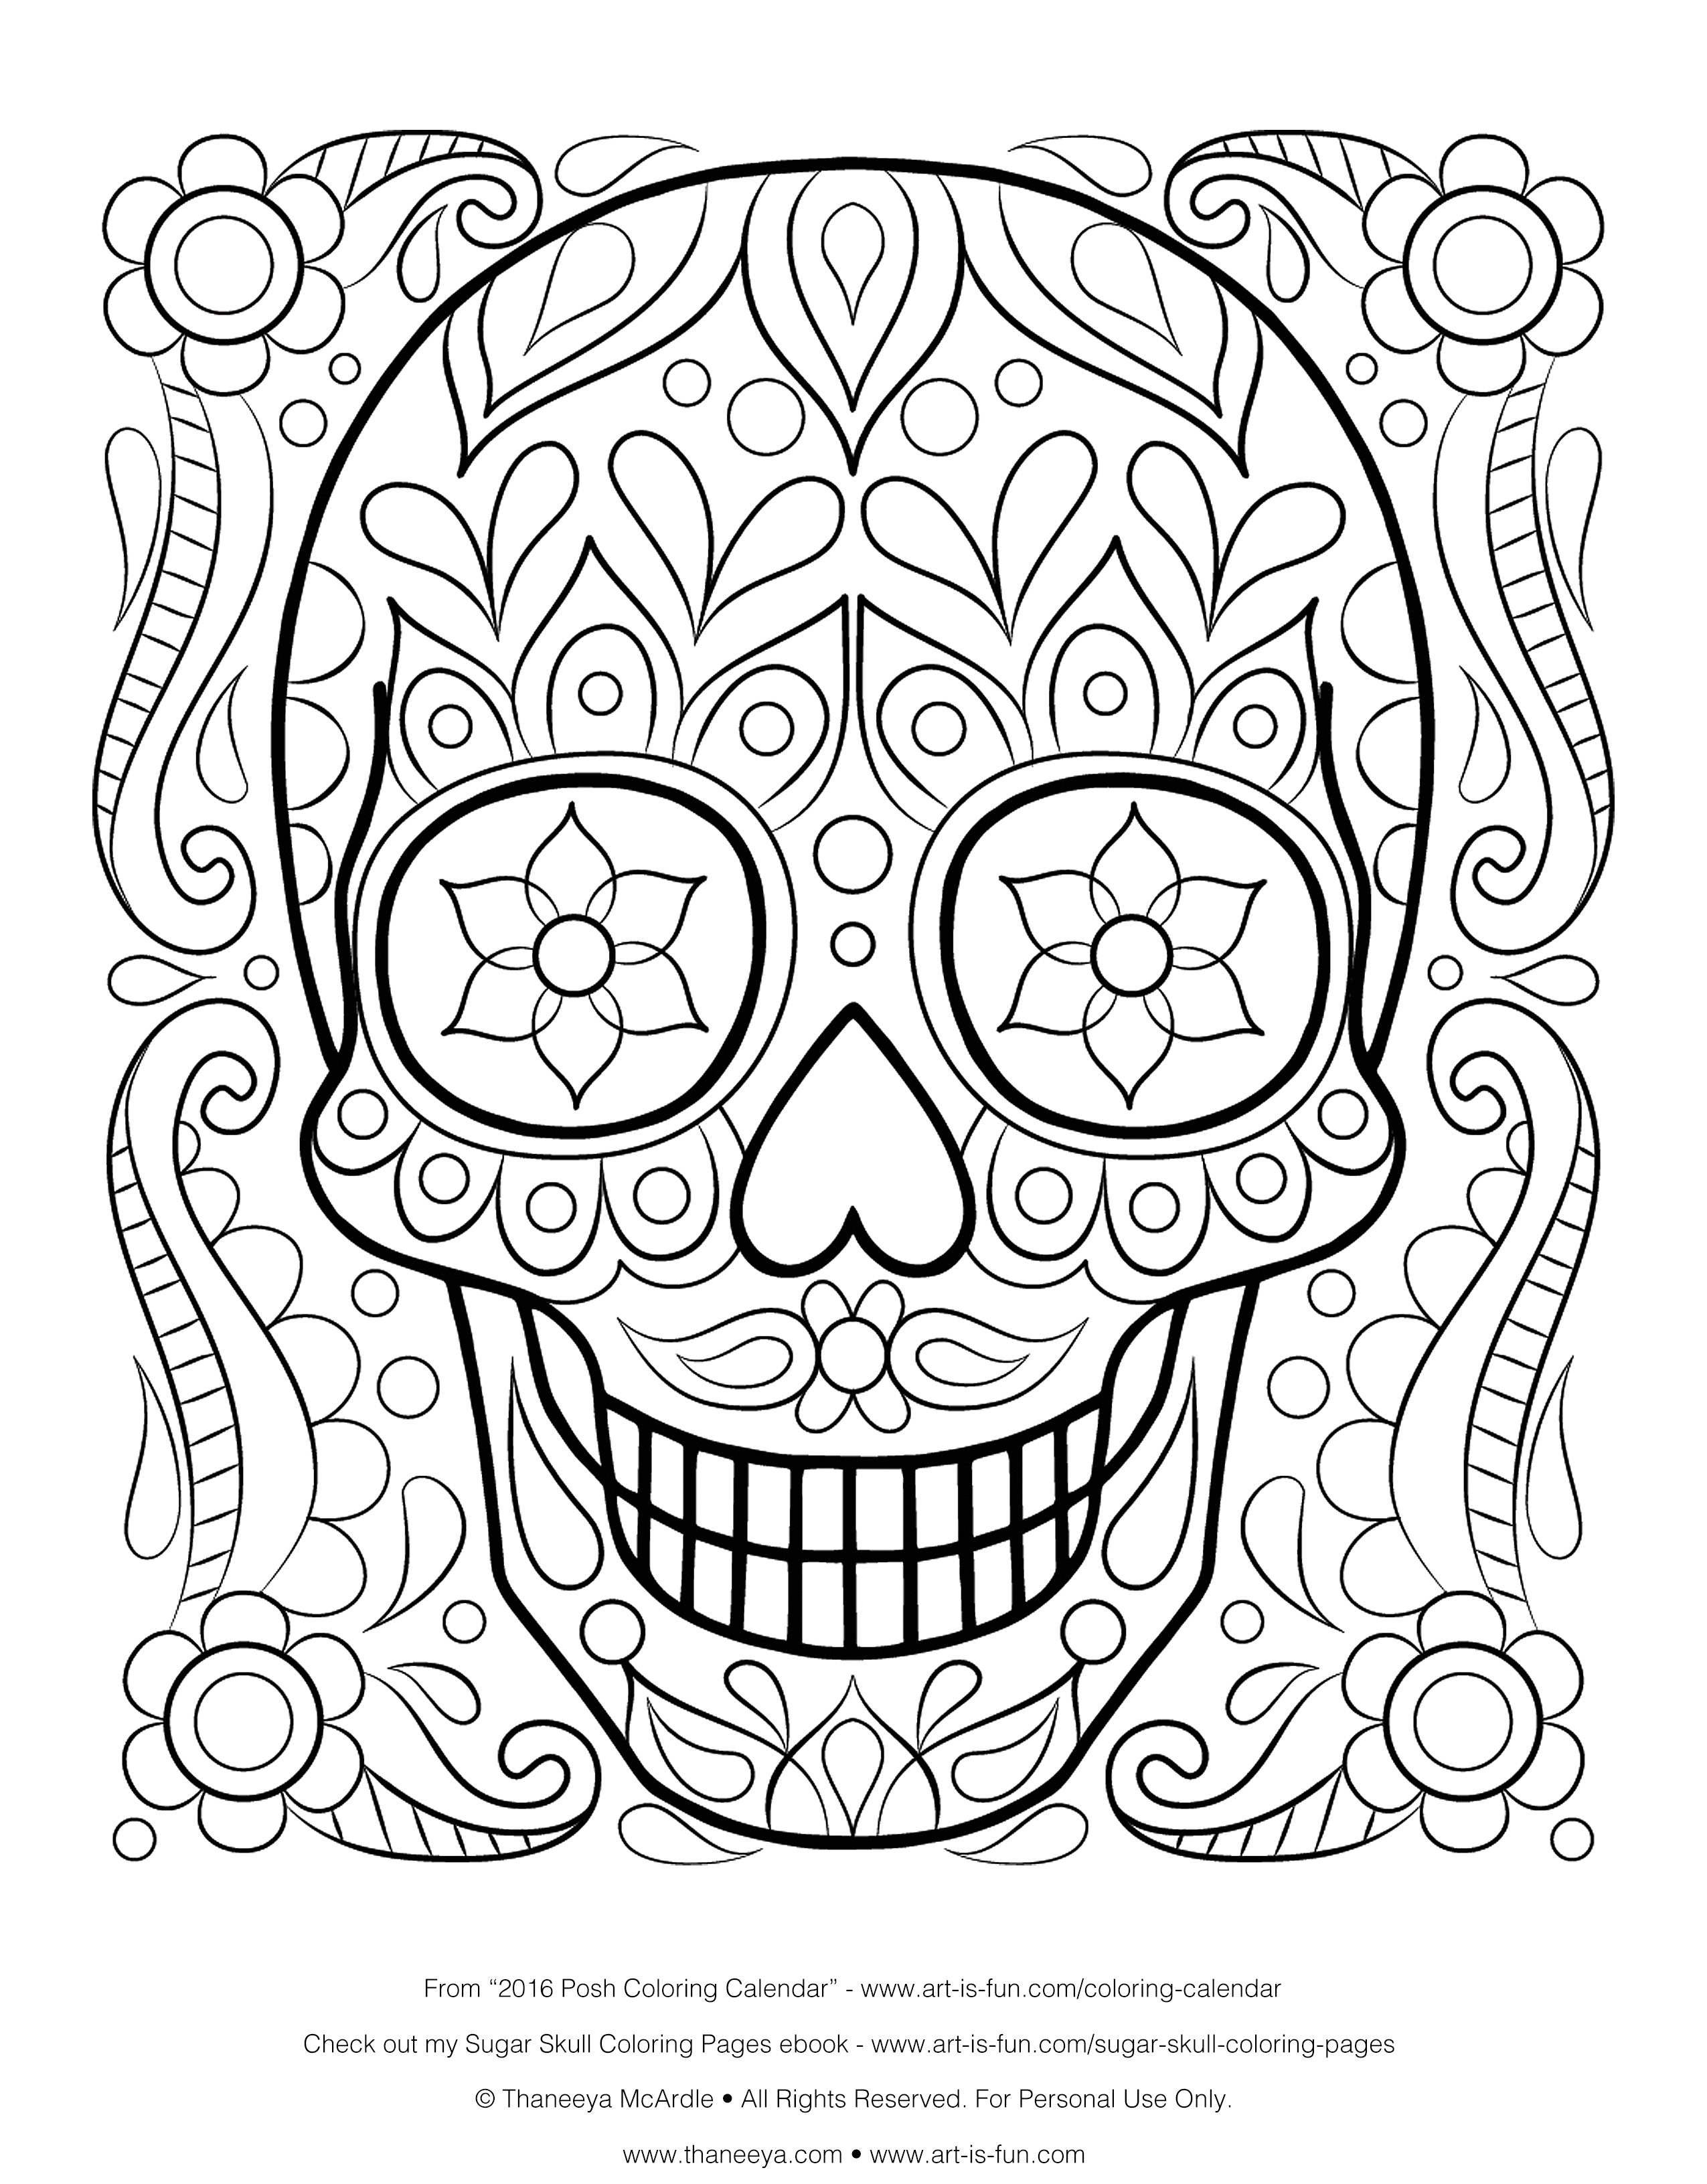 Skull Color Pages Coloring Ideas Bones Of The Skull Coloring Pages Free Printable